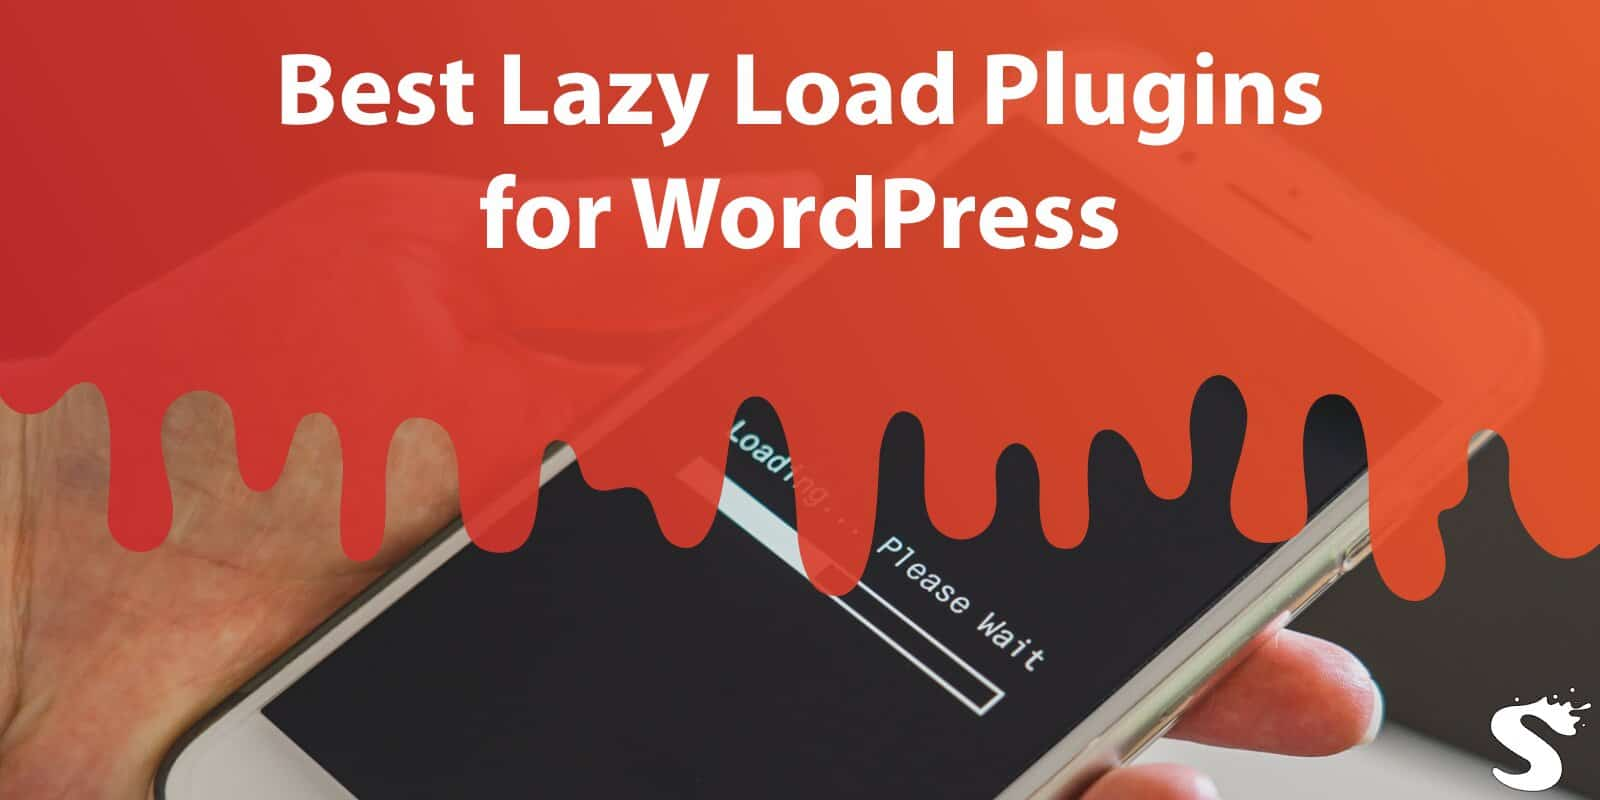 Best Lazy Load Plugins for WordPress